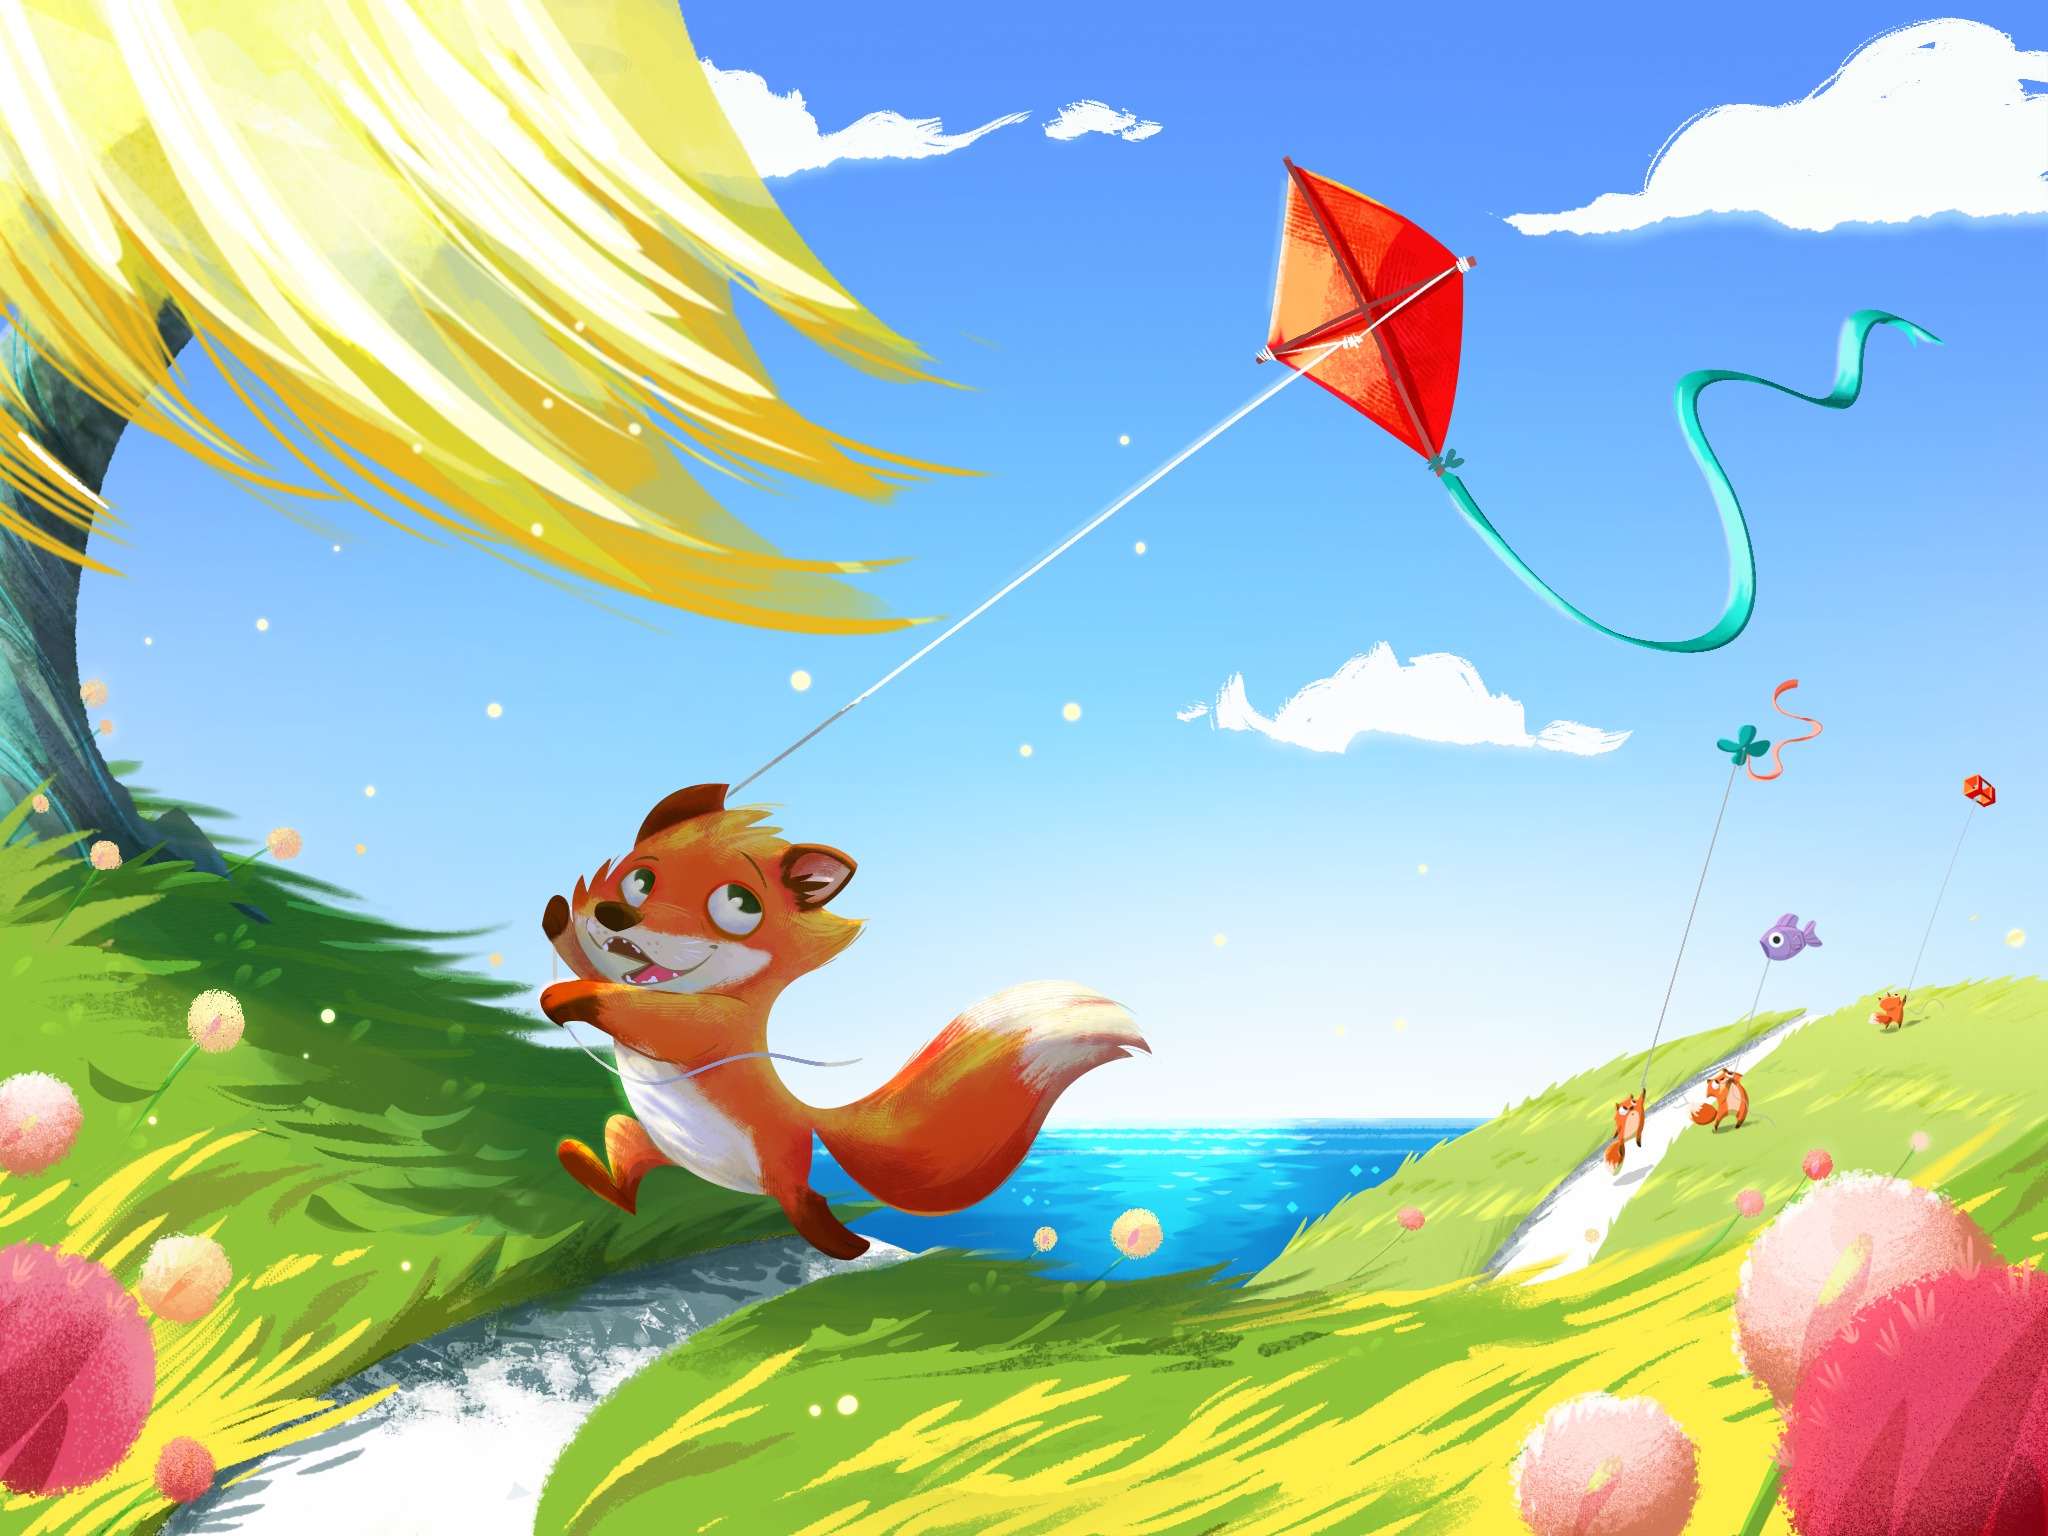 A Windy Day To Fly on Windy Days Clipart